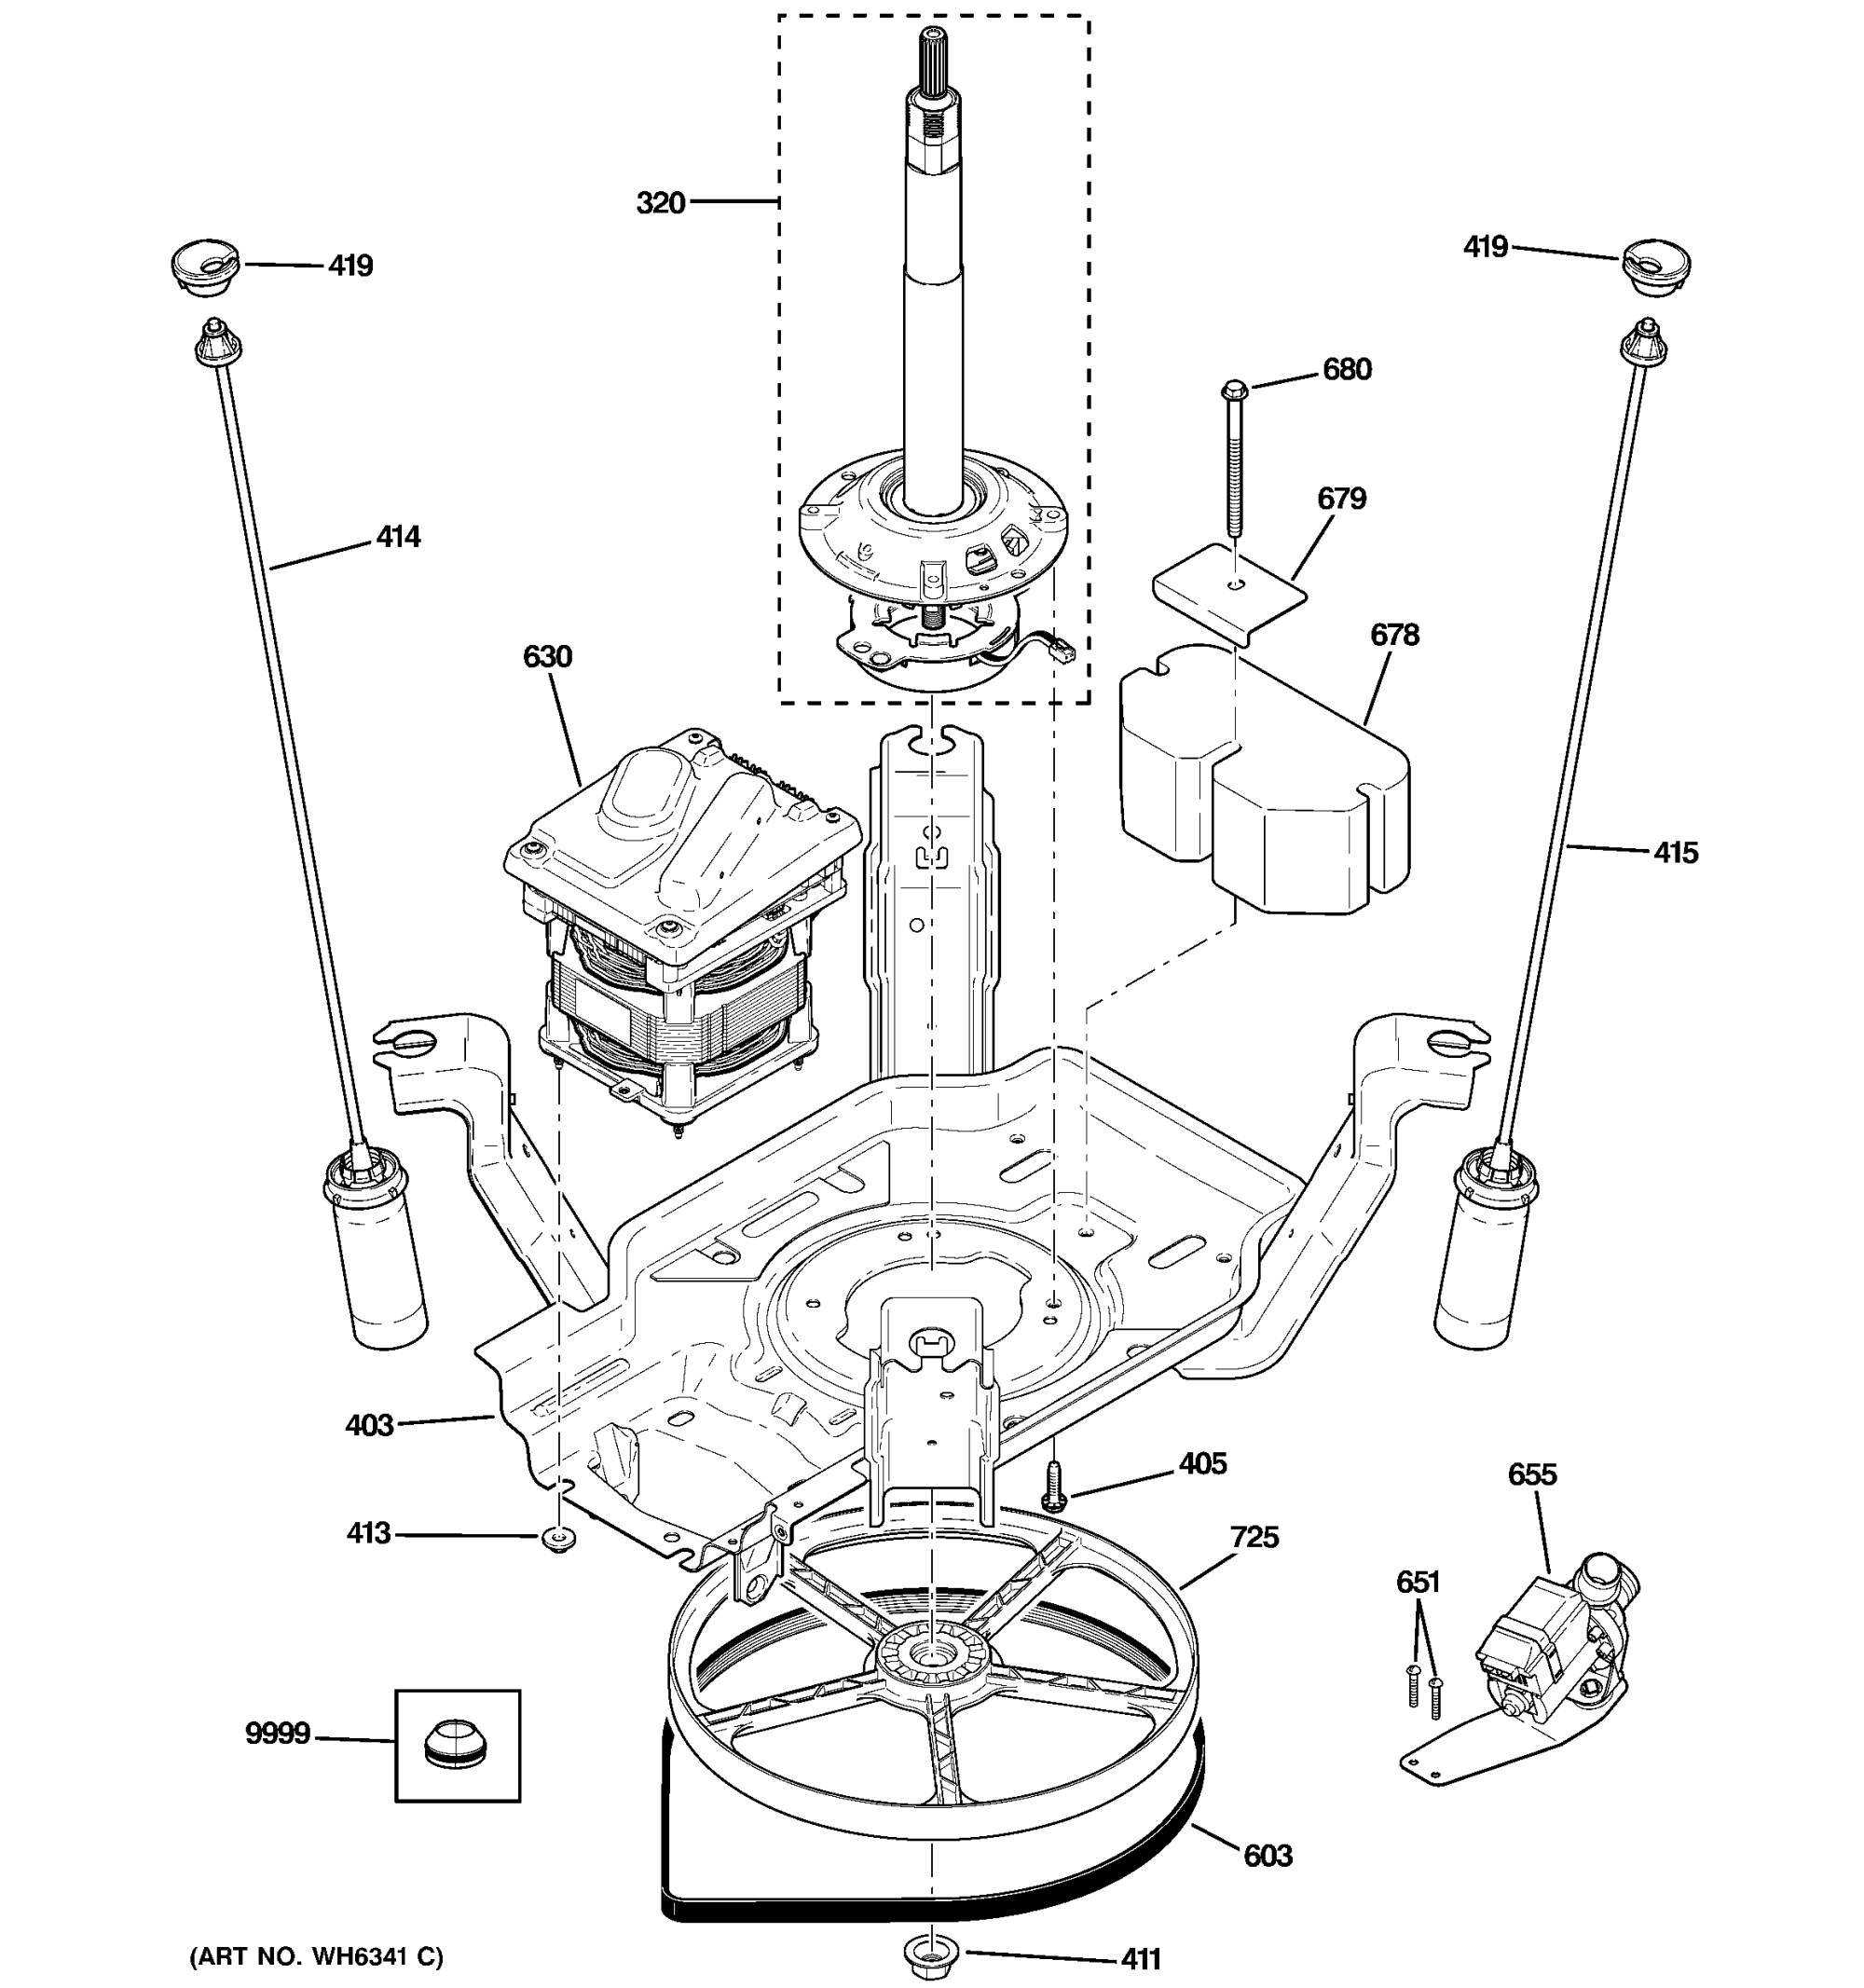 hight resolution of ge gwse5240h1ww suspension pump drive components diagram